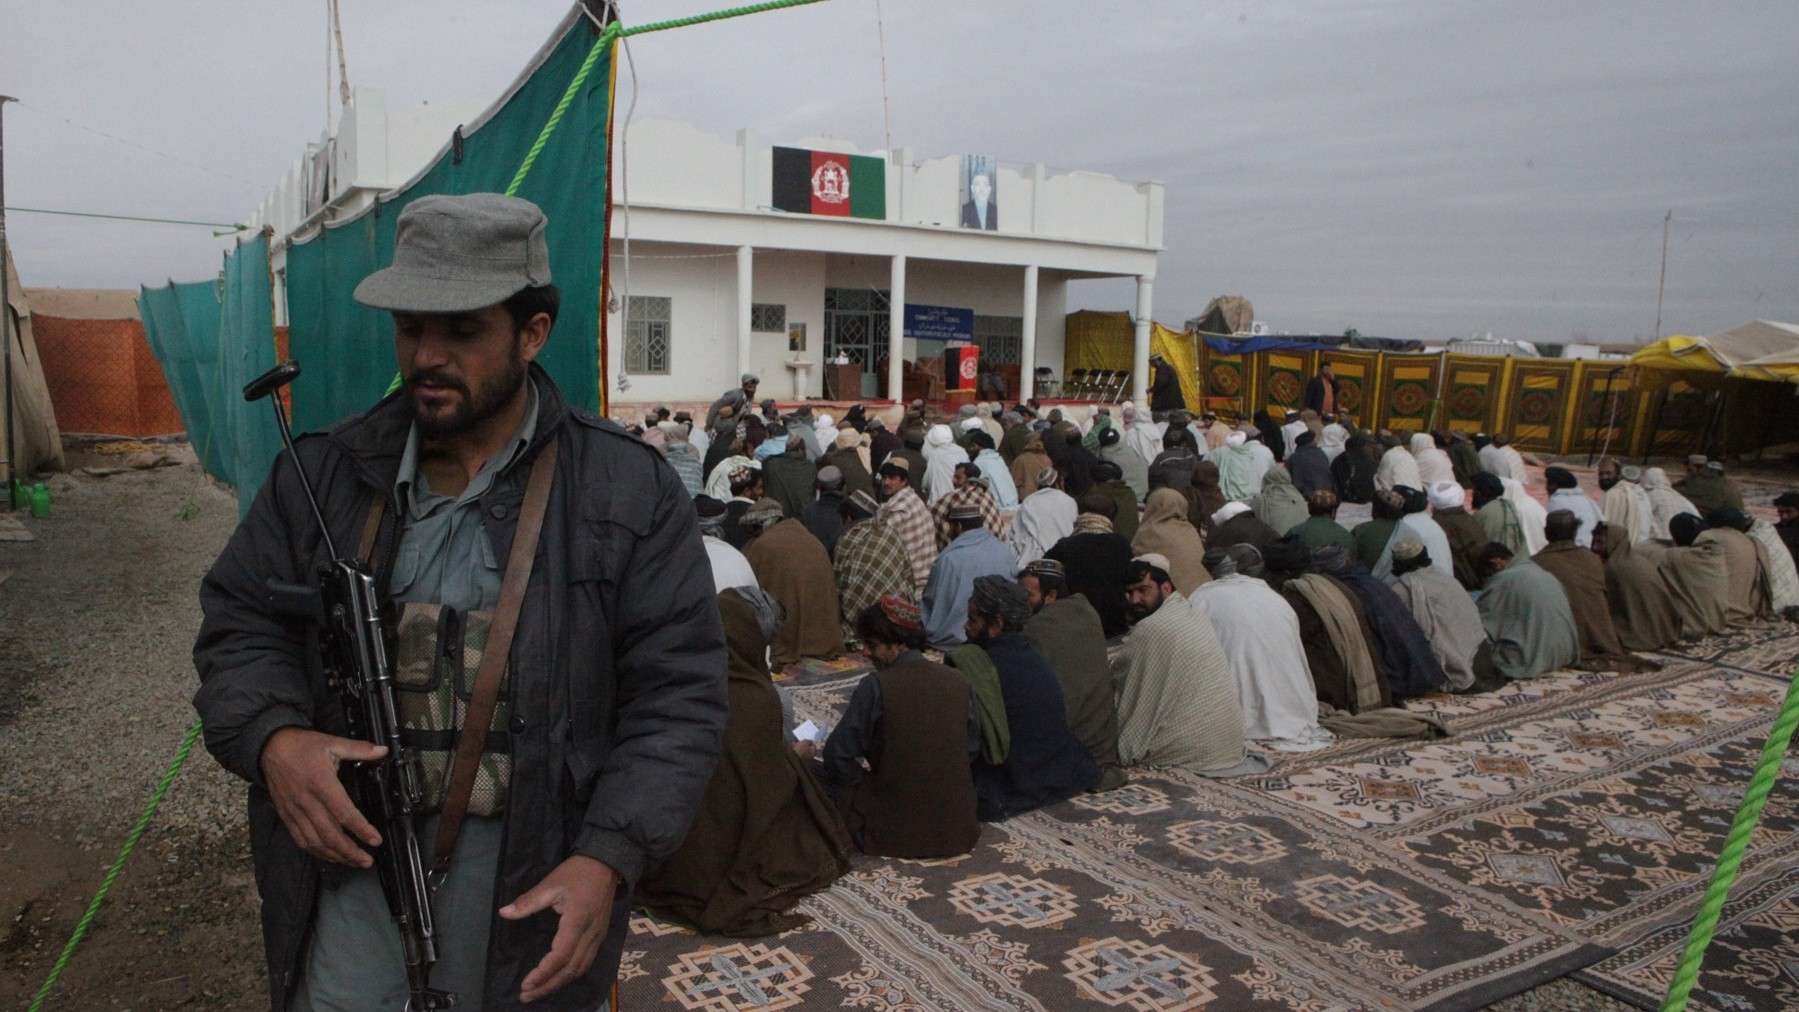 Citizen Journalists Are Live-Blogging the Afghan Presidential Election